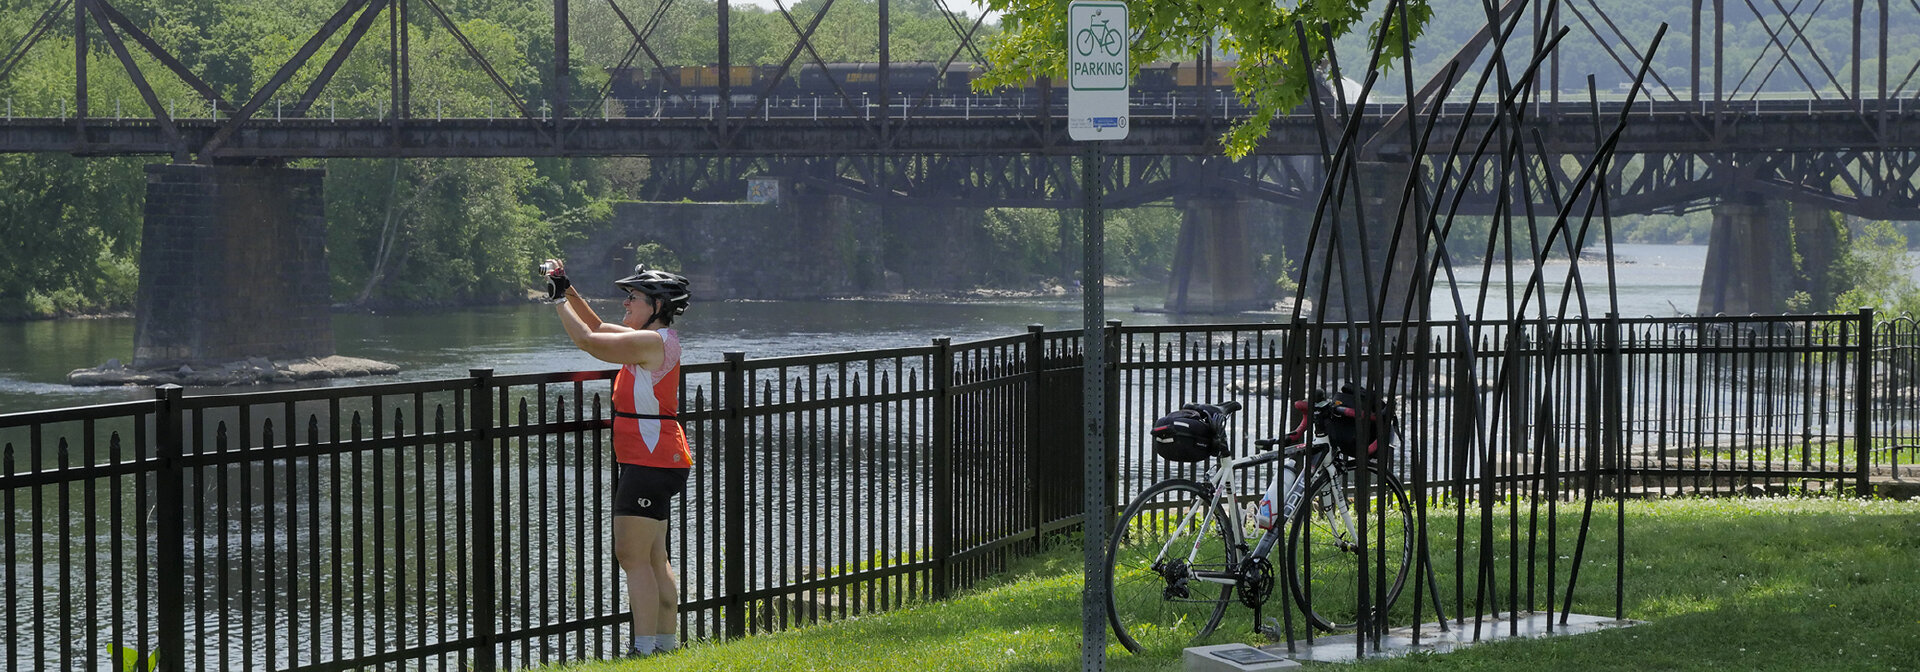 Missouri: Katy Trail Epic Tour